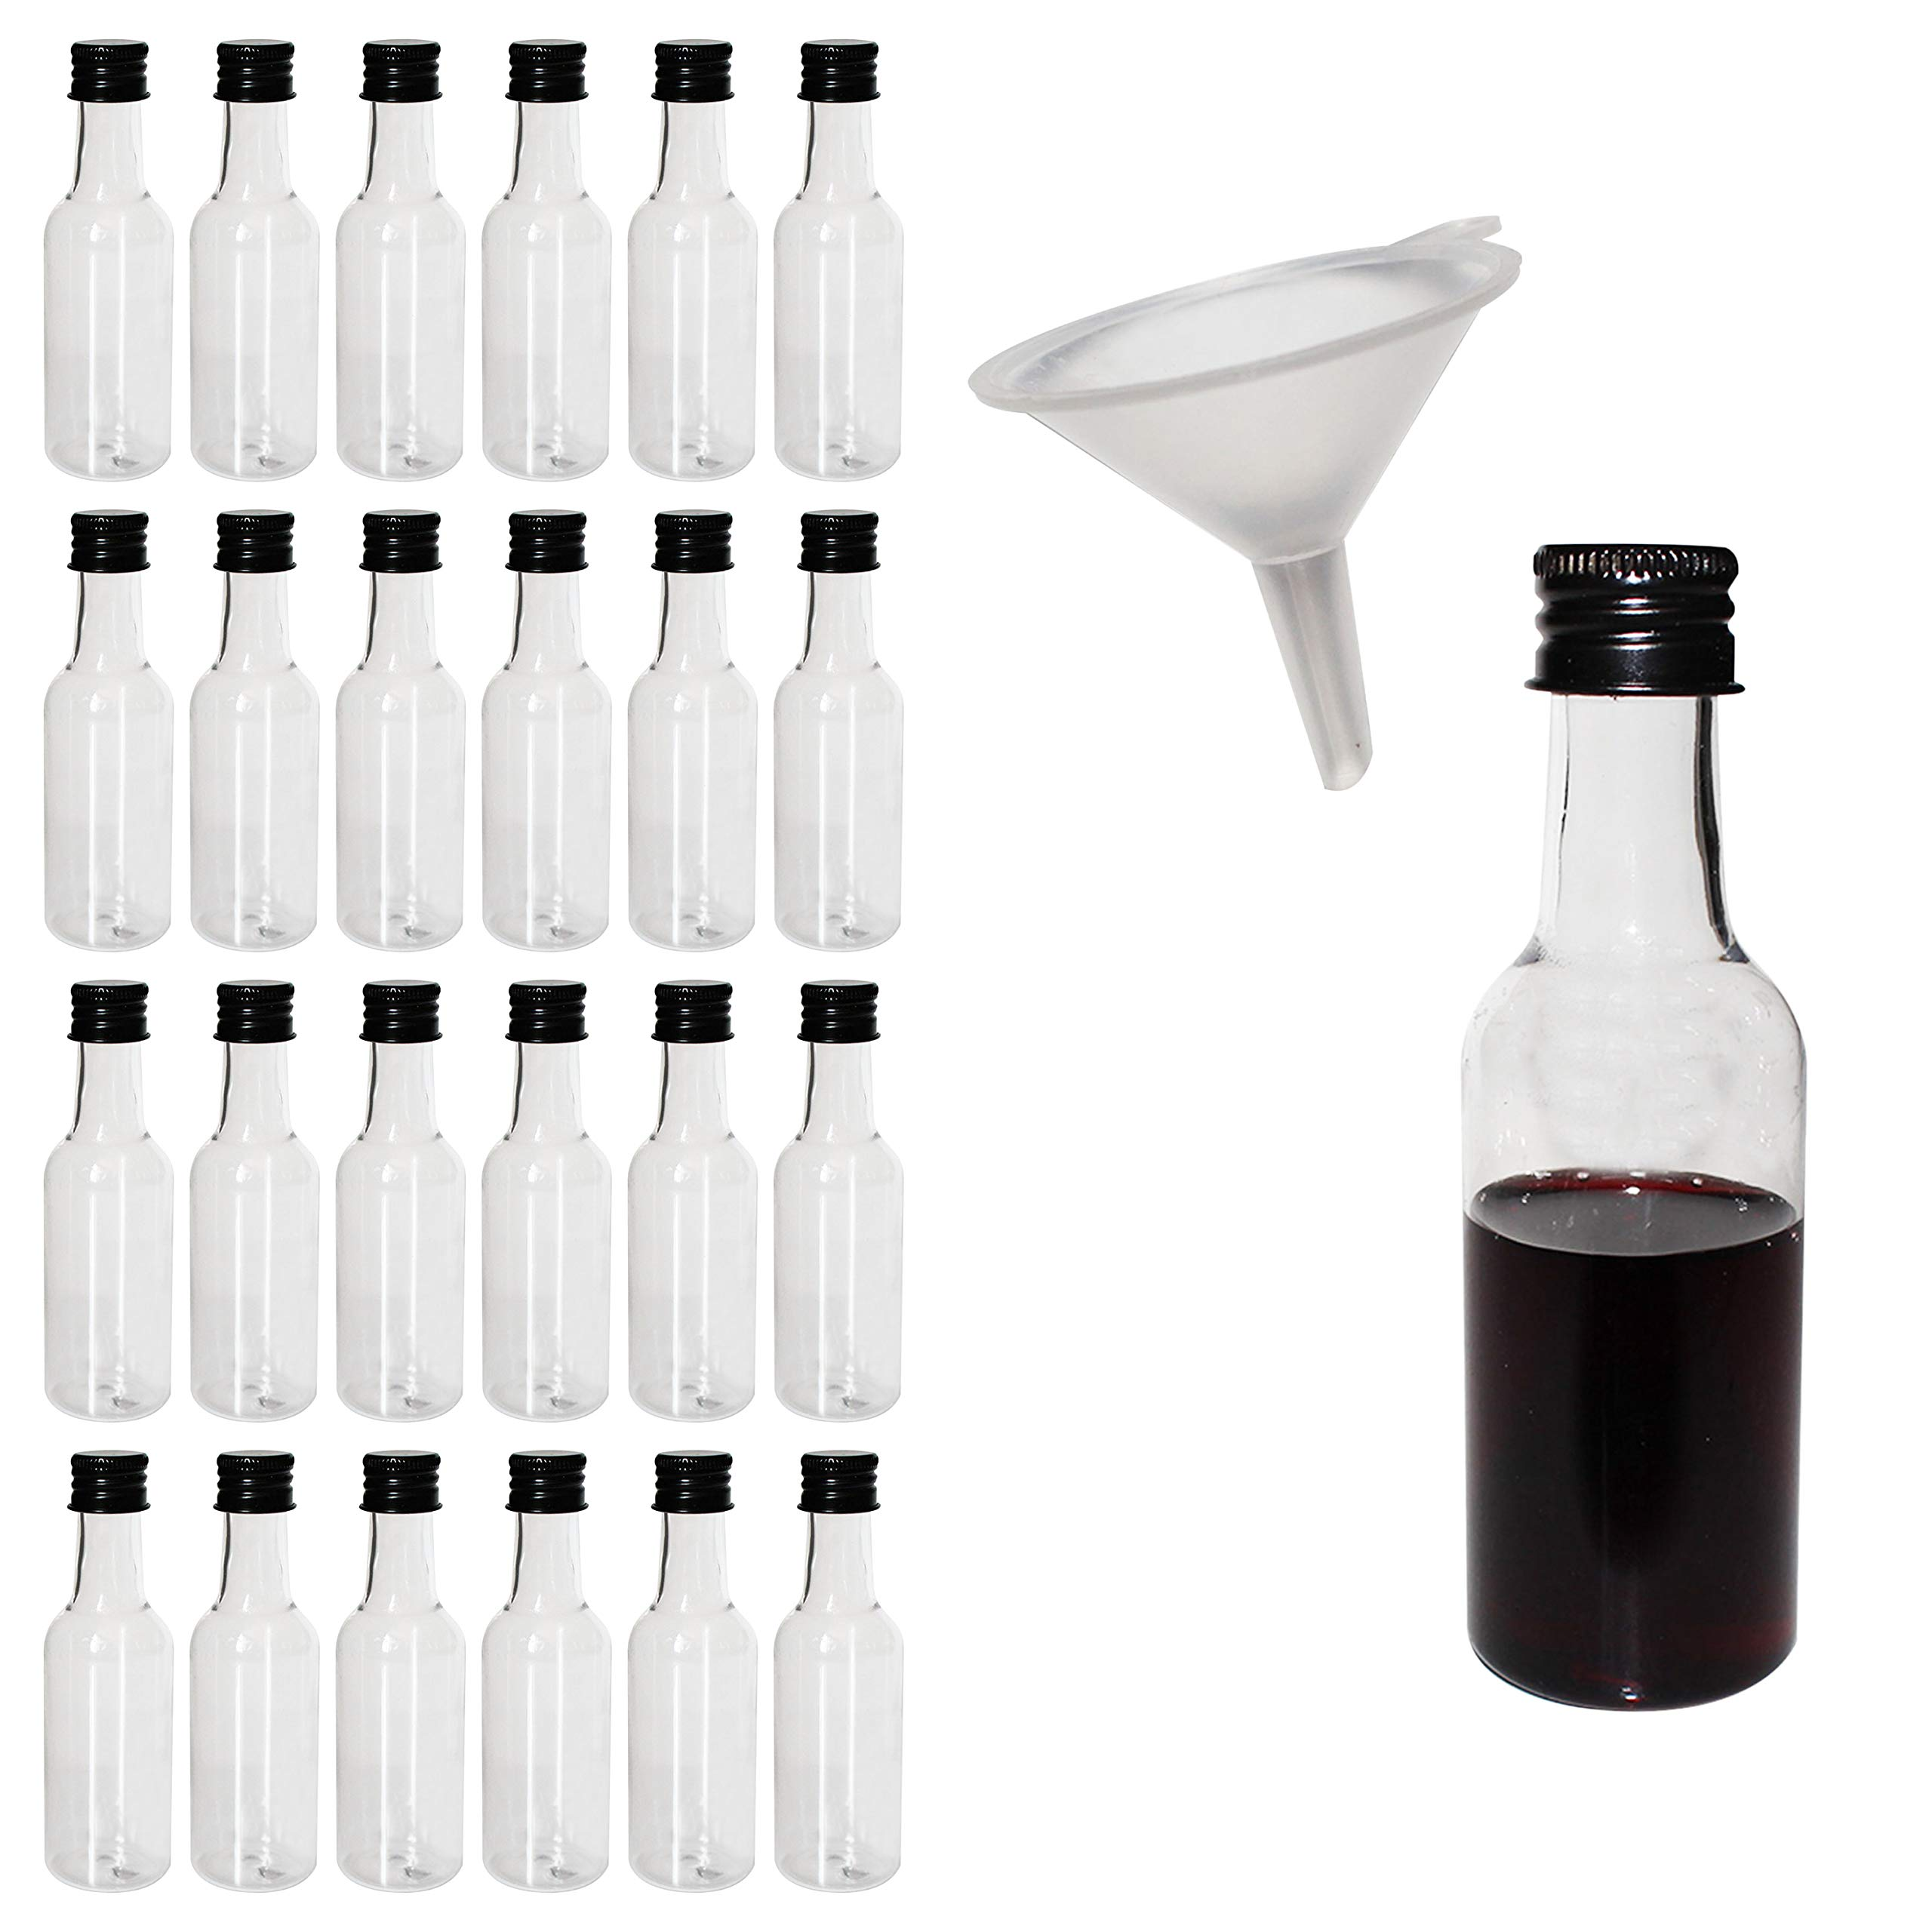 BELLE VOUS Liquor Bottles (24 Pcs)- Mini 55ml Plastic Empty Liquor Bottles with Black Cap and Liquid Funnel for Pouring Liquid in Bottles - Great for Weddings, Party Favors, Arts, Paints and Events